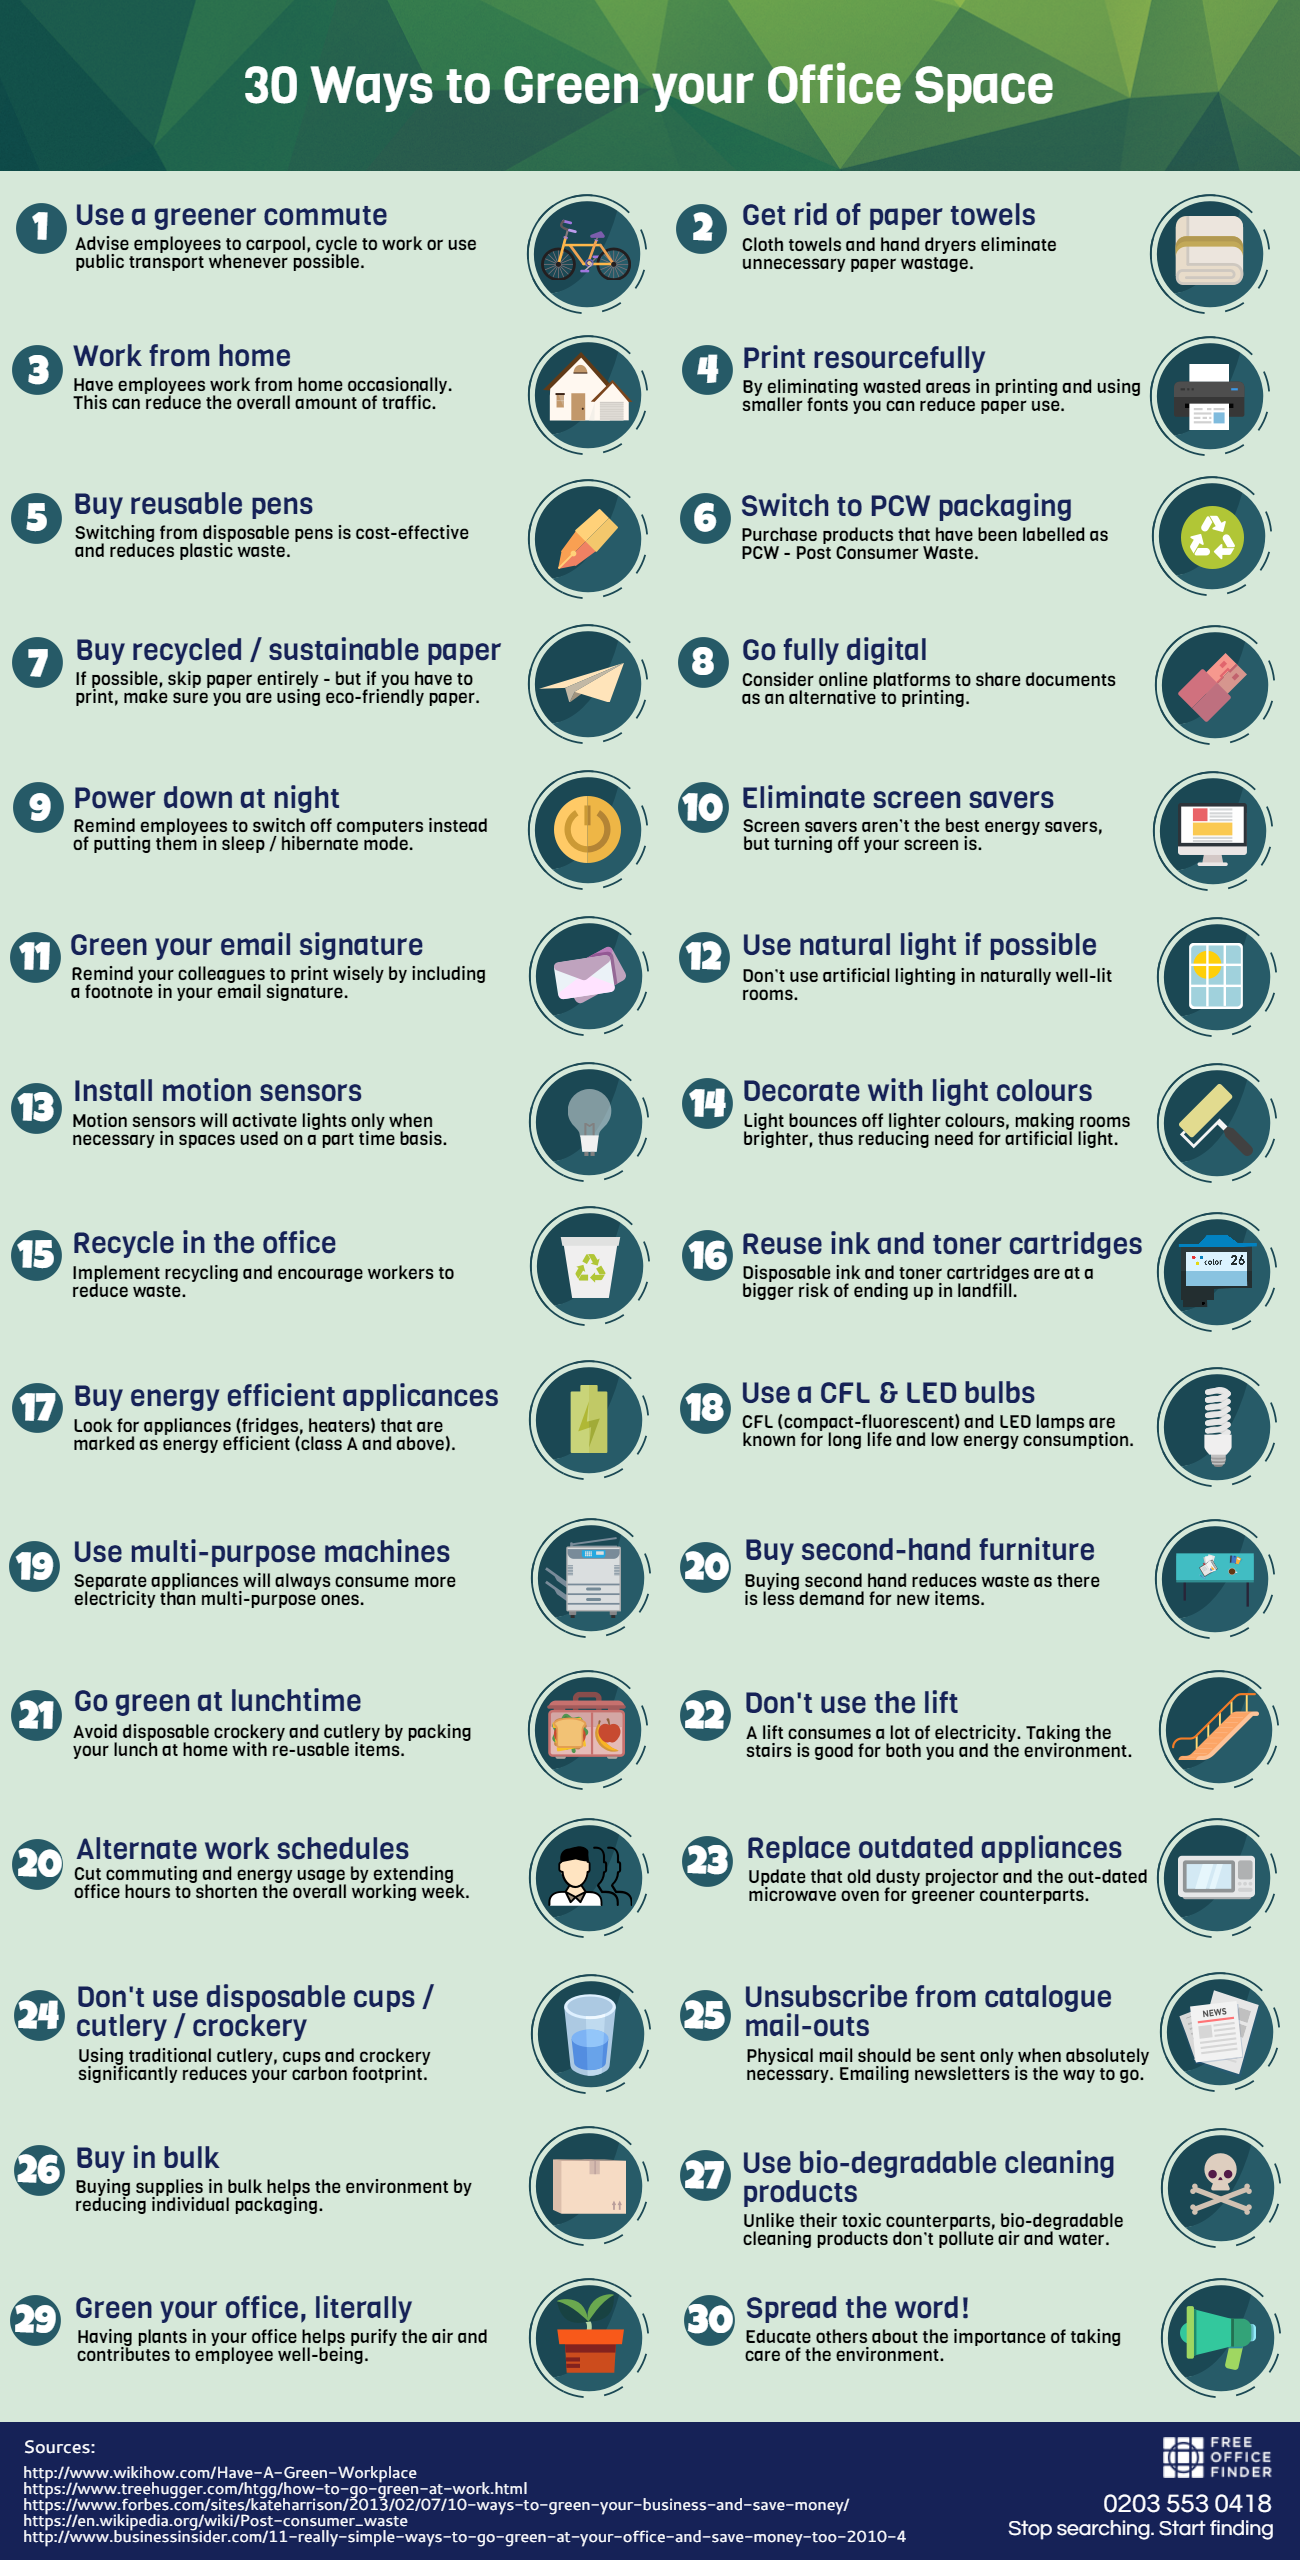 green-your-office-infographic